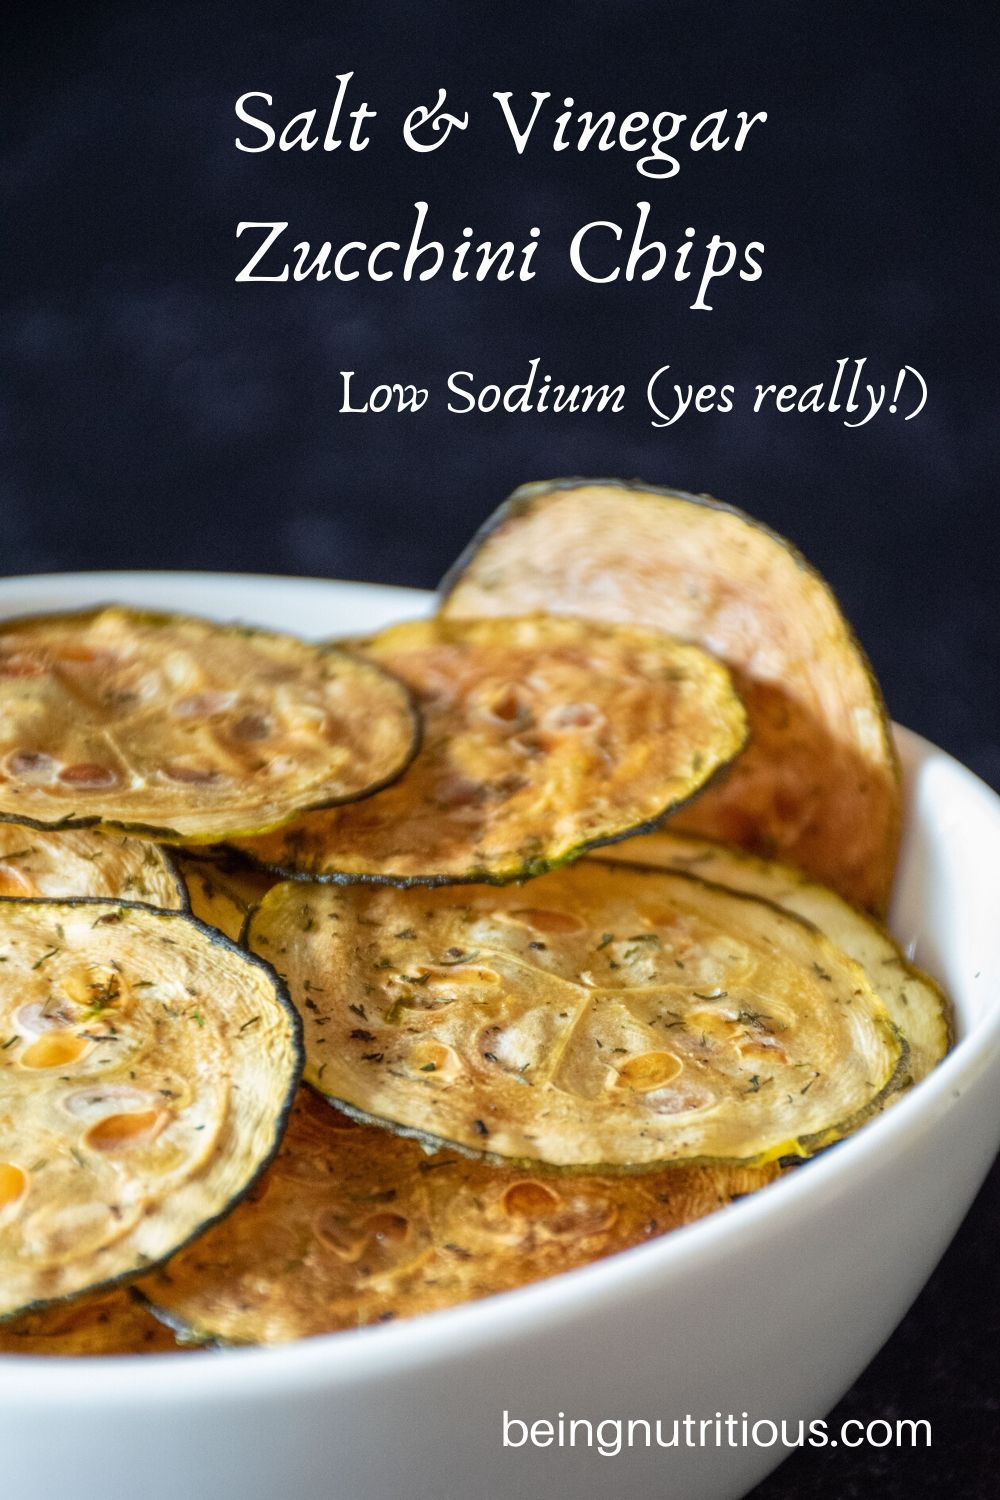 Zucchini chips in a white bowl in front of dark background.